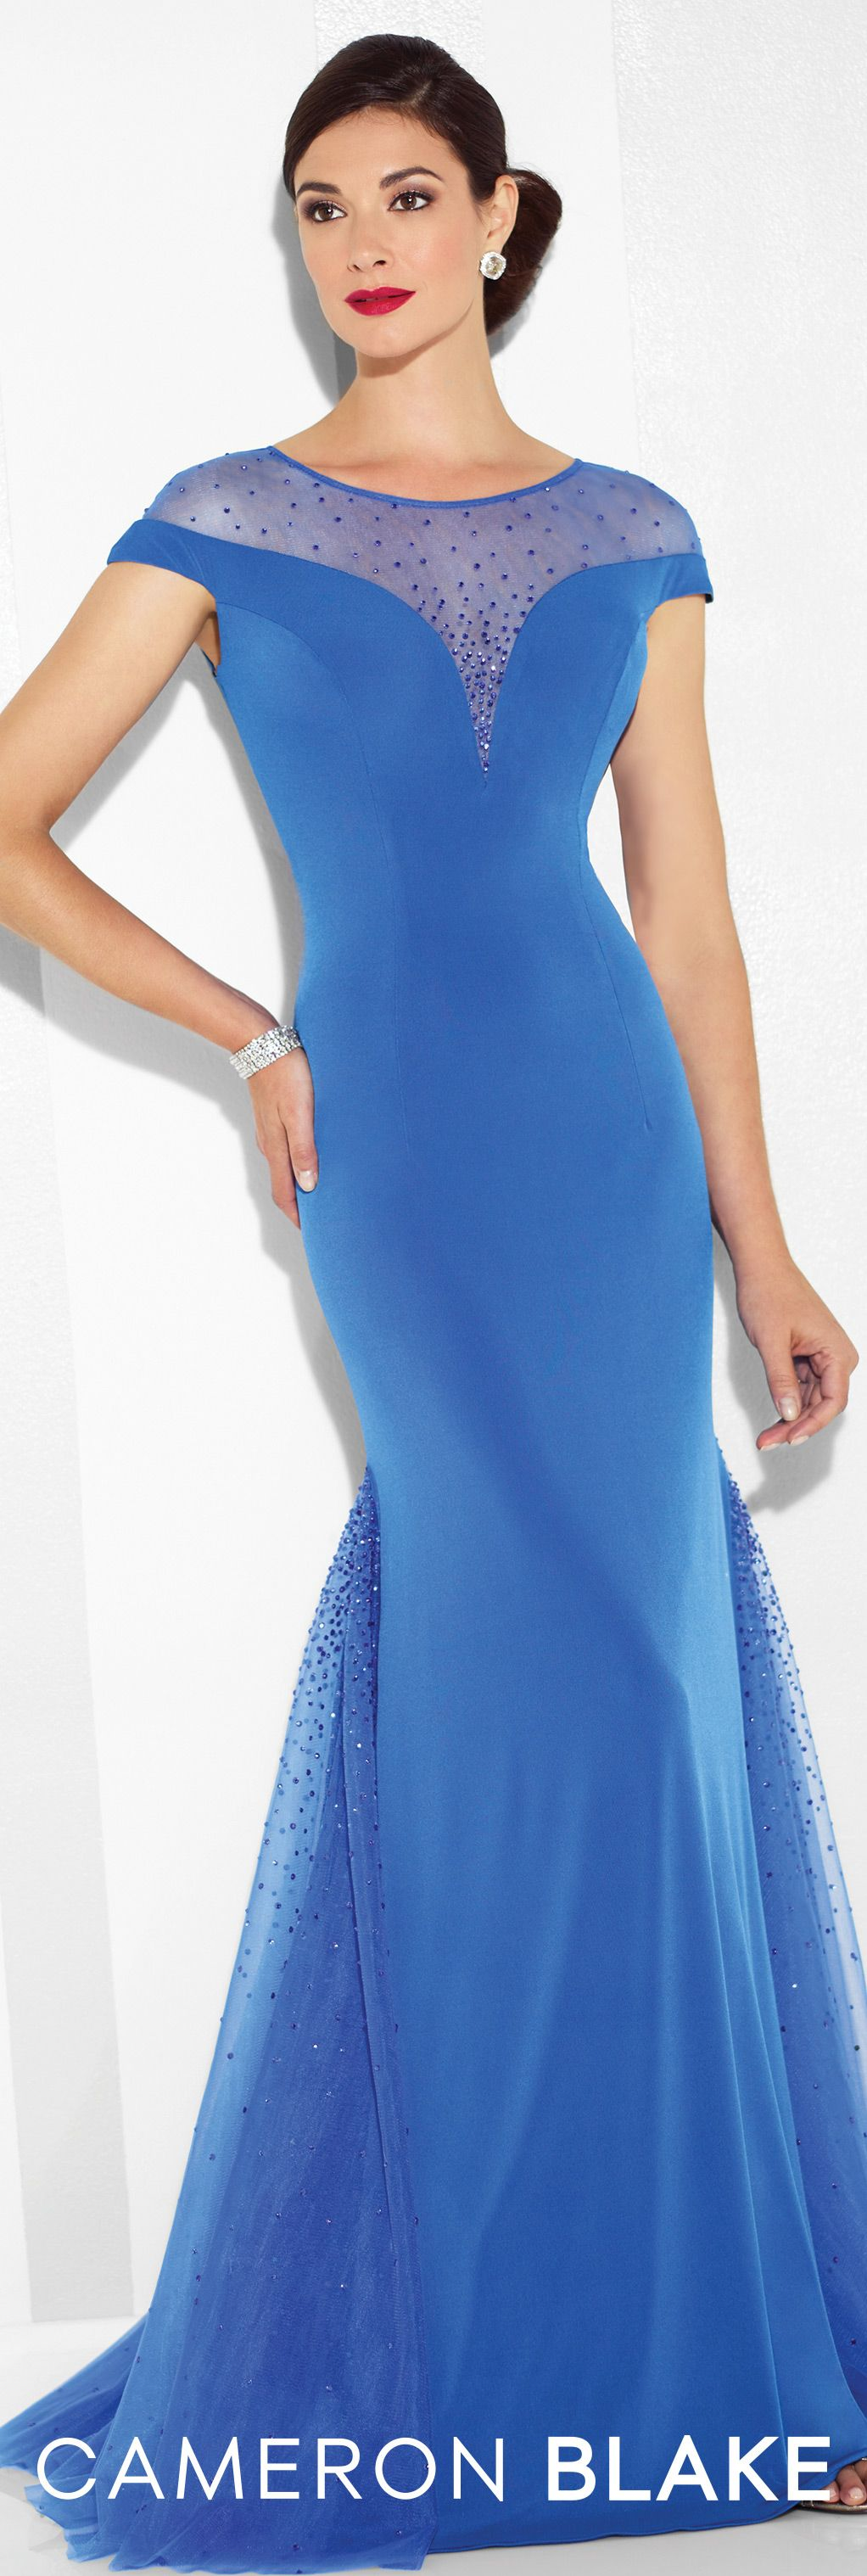 Cameron blake evening dresses trumpets illusions and